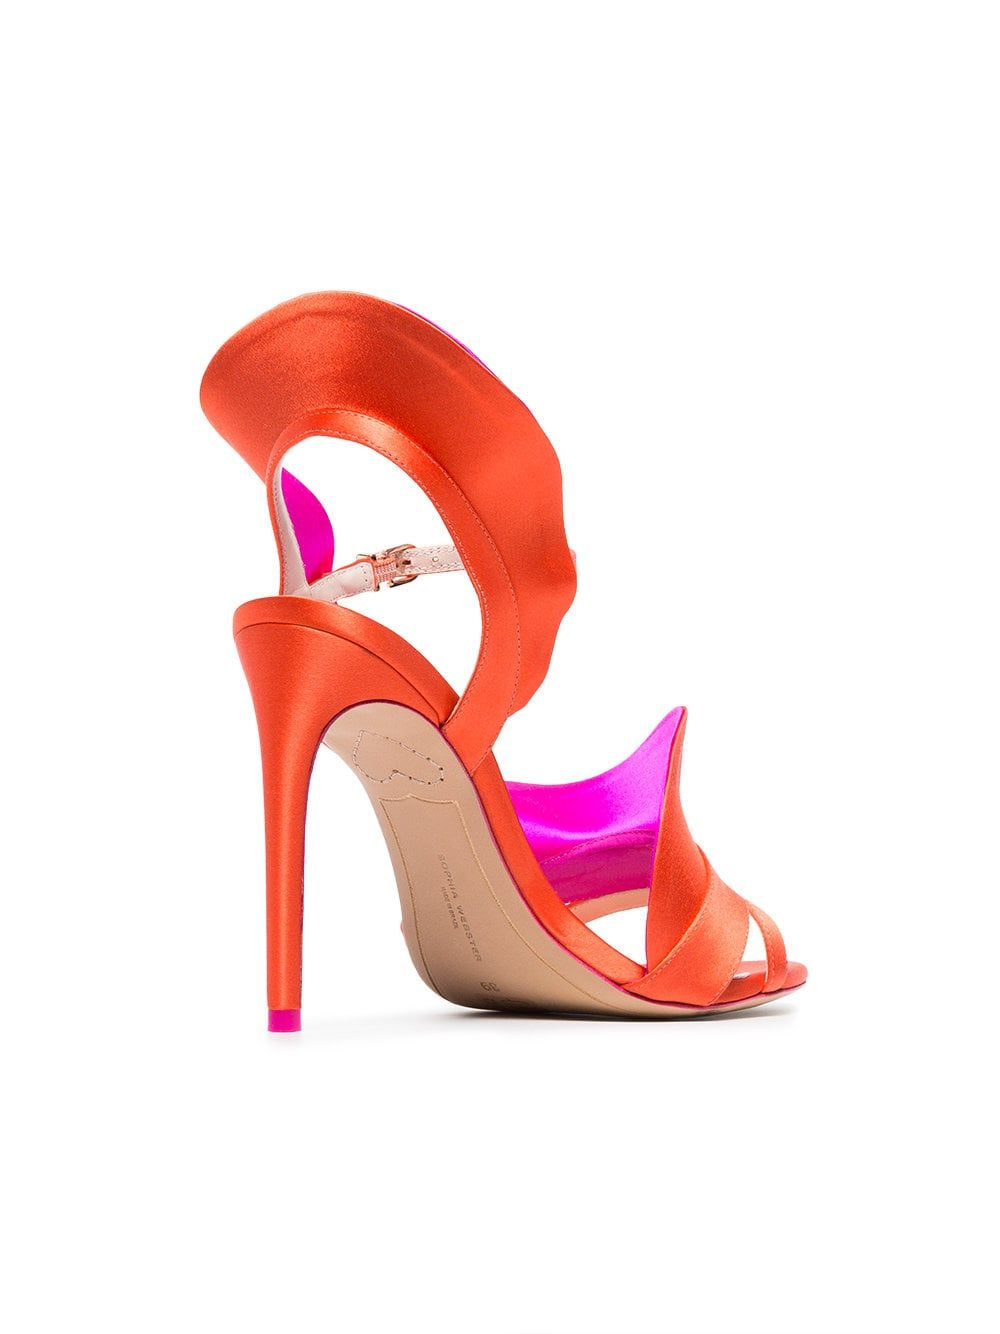 715d6f35bf6b Sophia Webster orange and pink Lucia 100 satin ruffle sandals